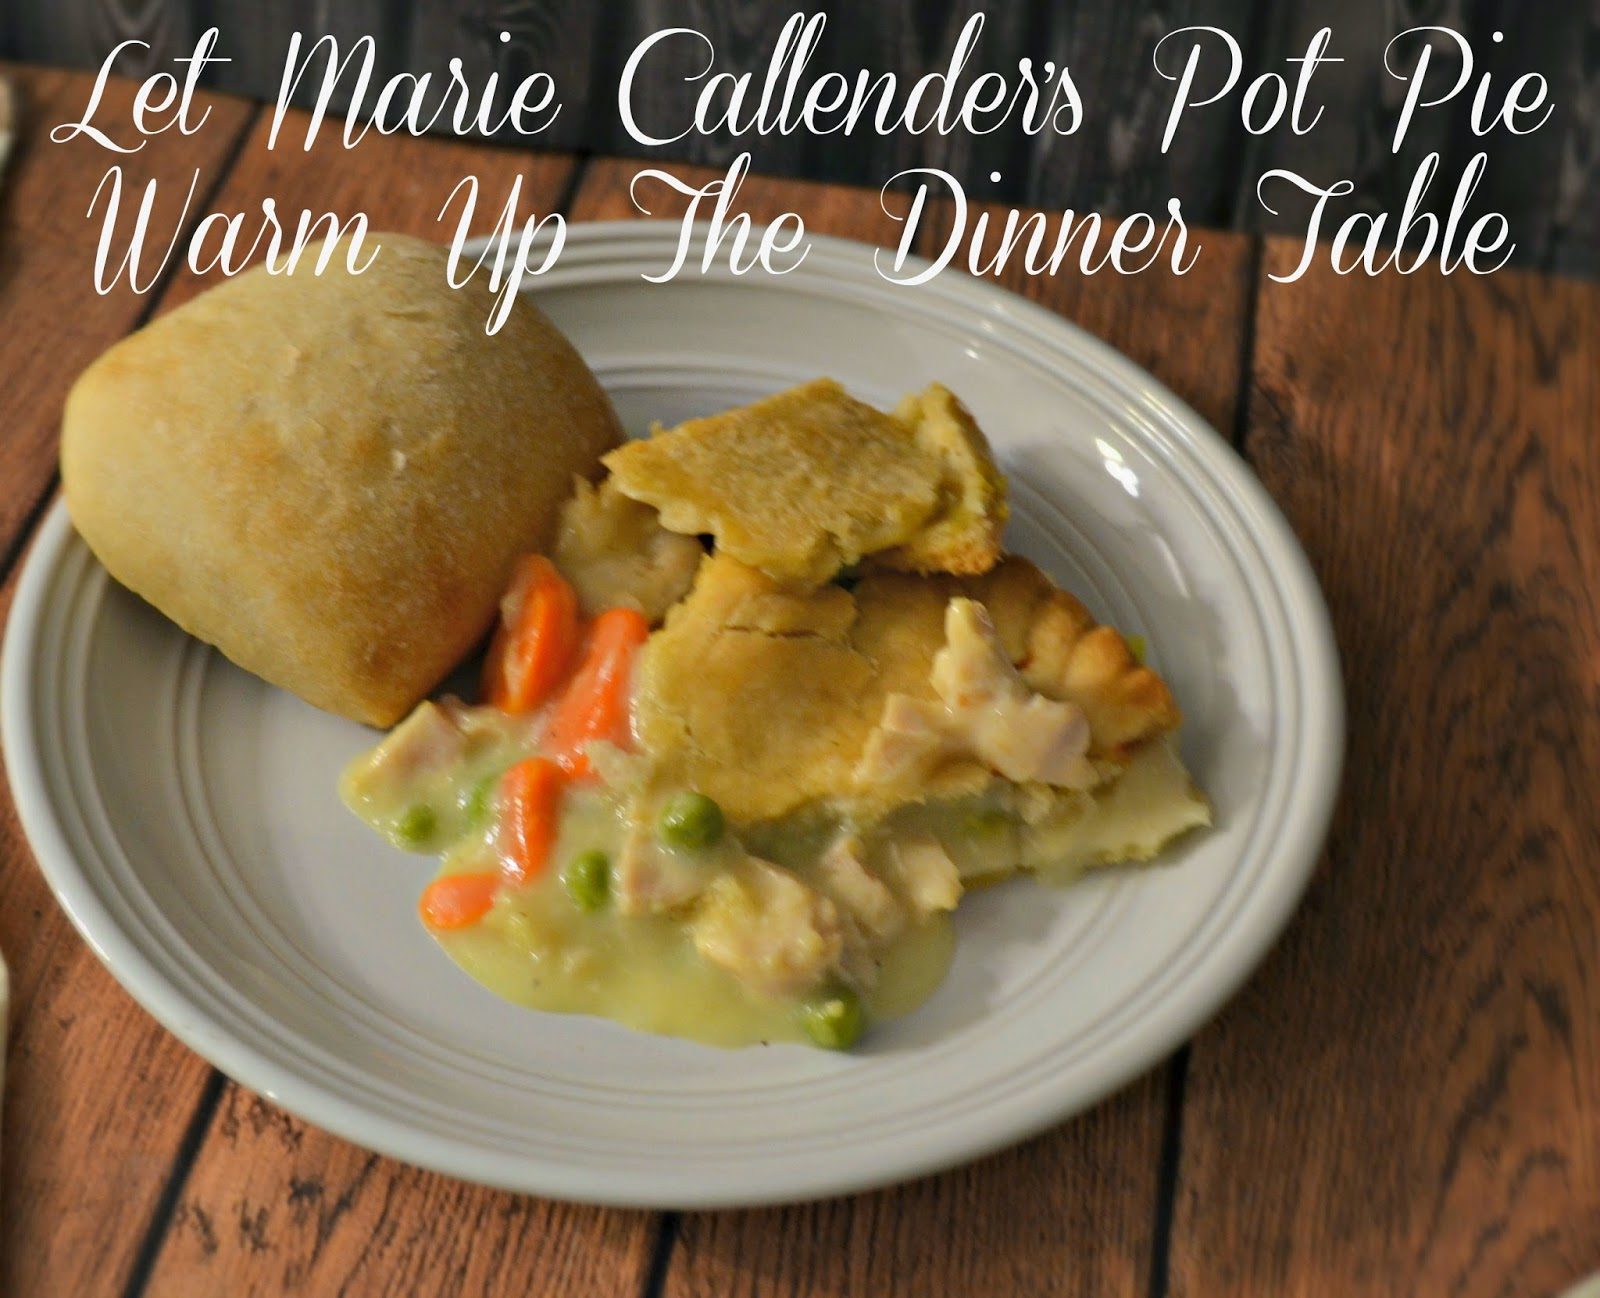 Marie Callender's tastes like homemade, Marie Callender's pot pies, Marie Callender's pies, Marie Callender's Chicken Pot Pie Cold Weather Dinners with Marie Callender's Chicken Pot Pies